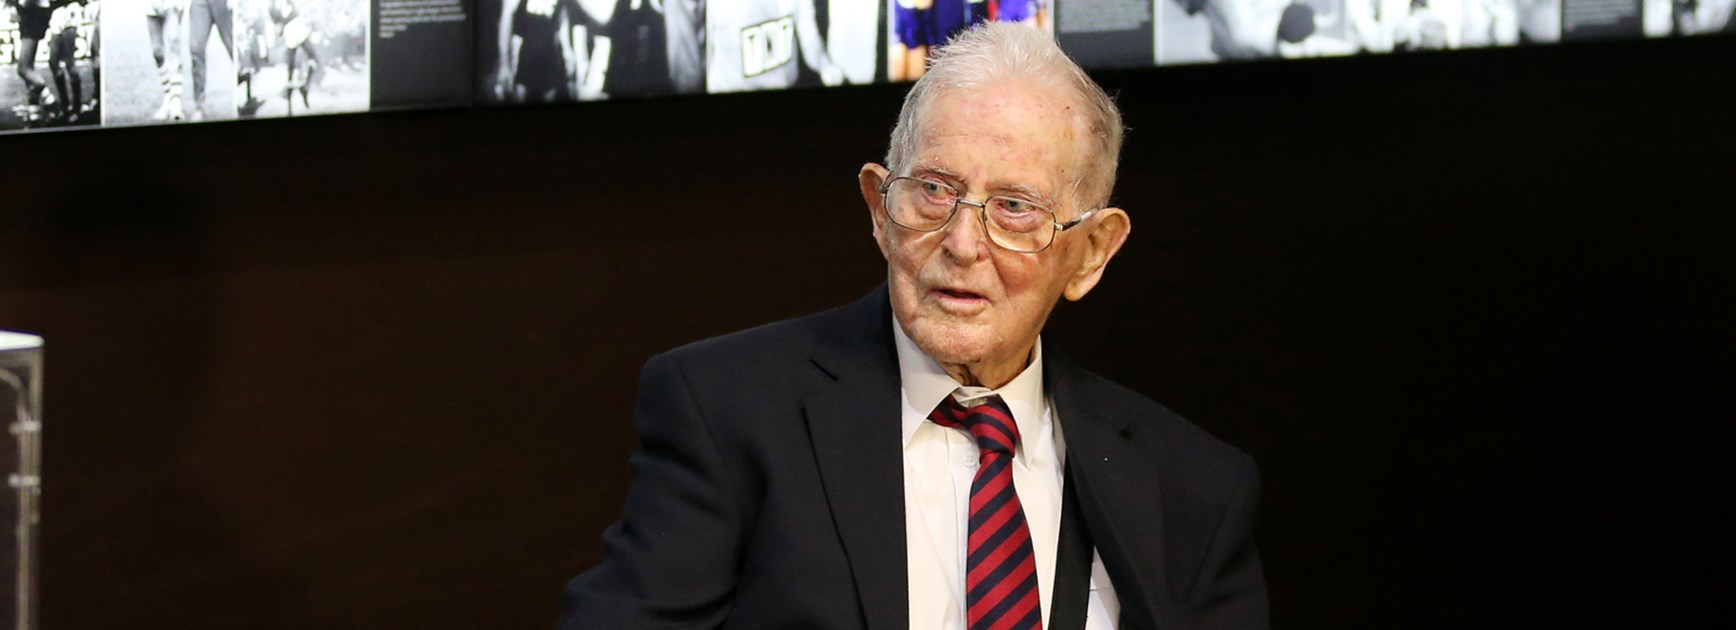 The NRL celebrated the 100th birthday of former referee Robert Culkin.